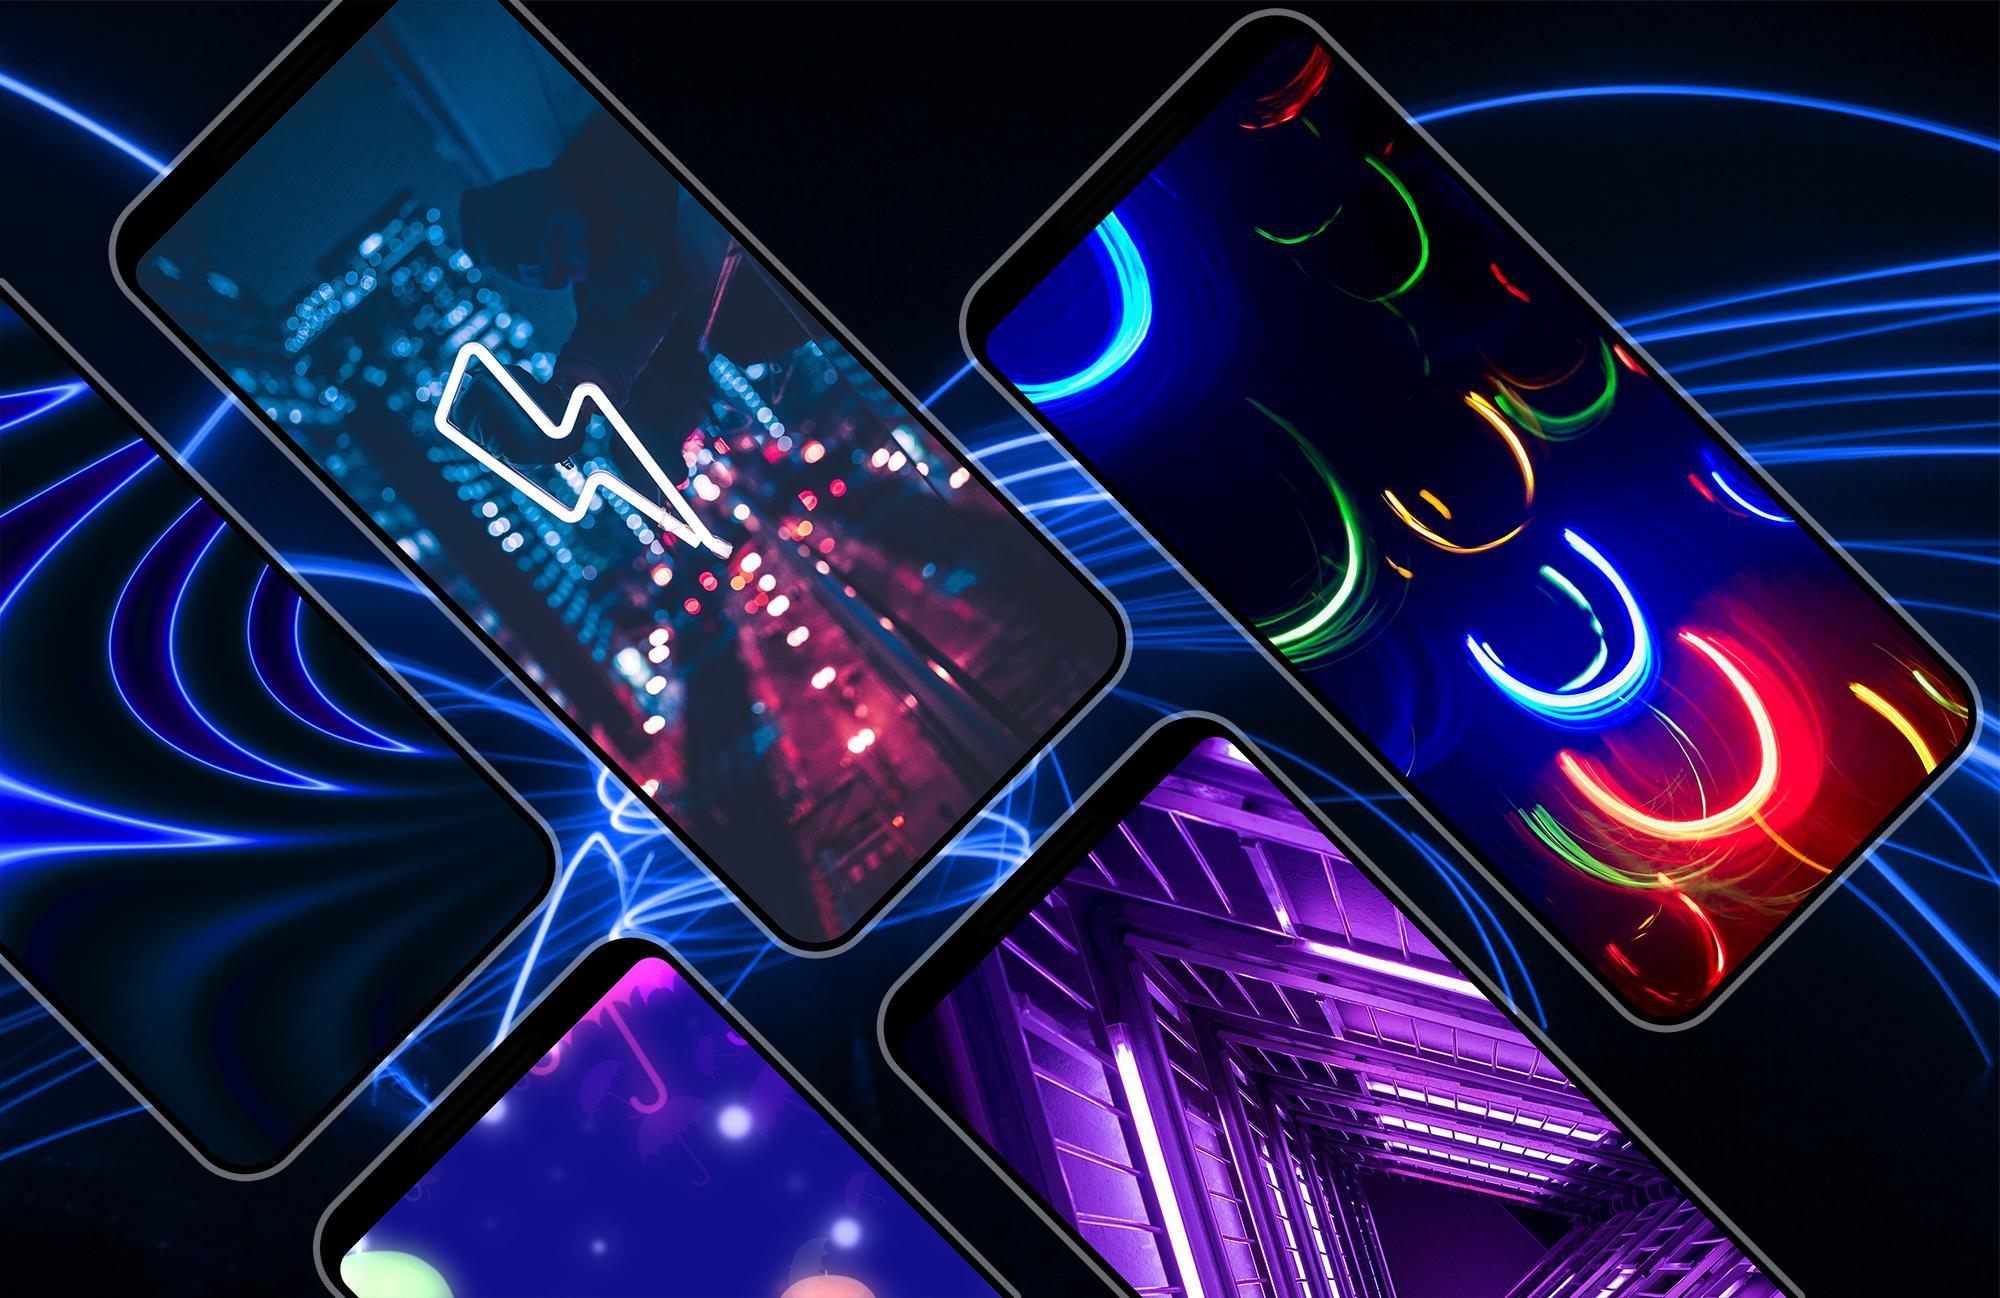 Full Hd Backgrounds Apk Latest: Best Wallpapers HD For Android